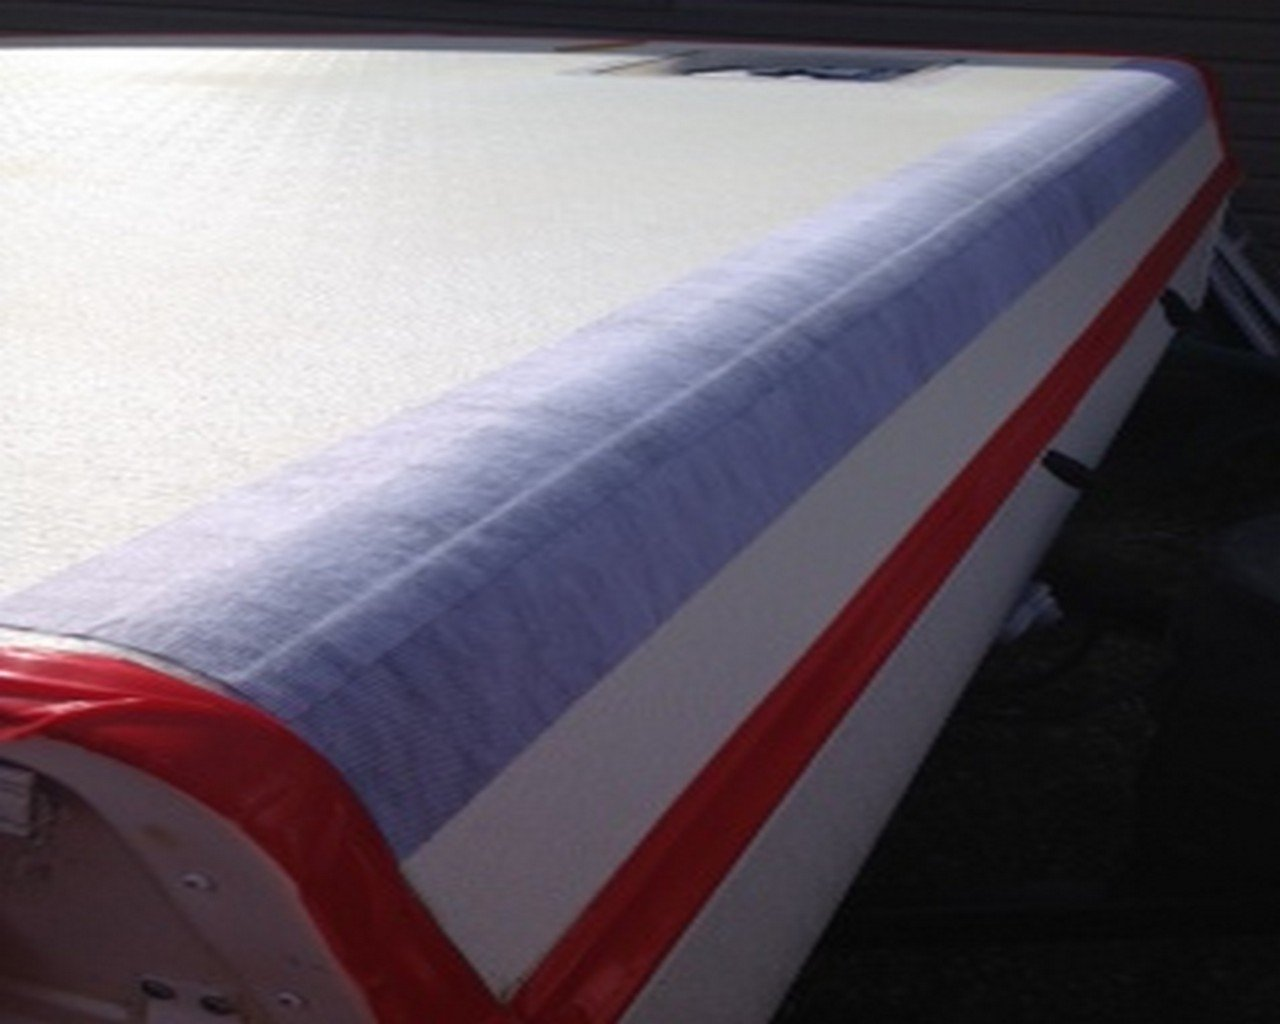 Liquid Rubber Seam Tape - Fix Leaks - For Repairs and Restoration - Easy to Use - Polyester Top to Accept Liquid Rubber Coatings - RV Roofs, Metal Roofs, Gutters... - TOP SELLER - 4'' x 50' Roll by Liquid Rubber USA (Image #4)